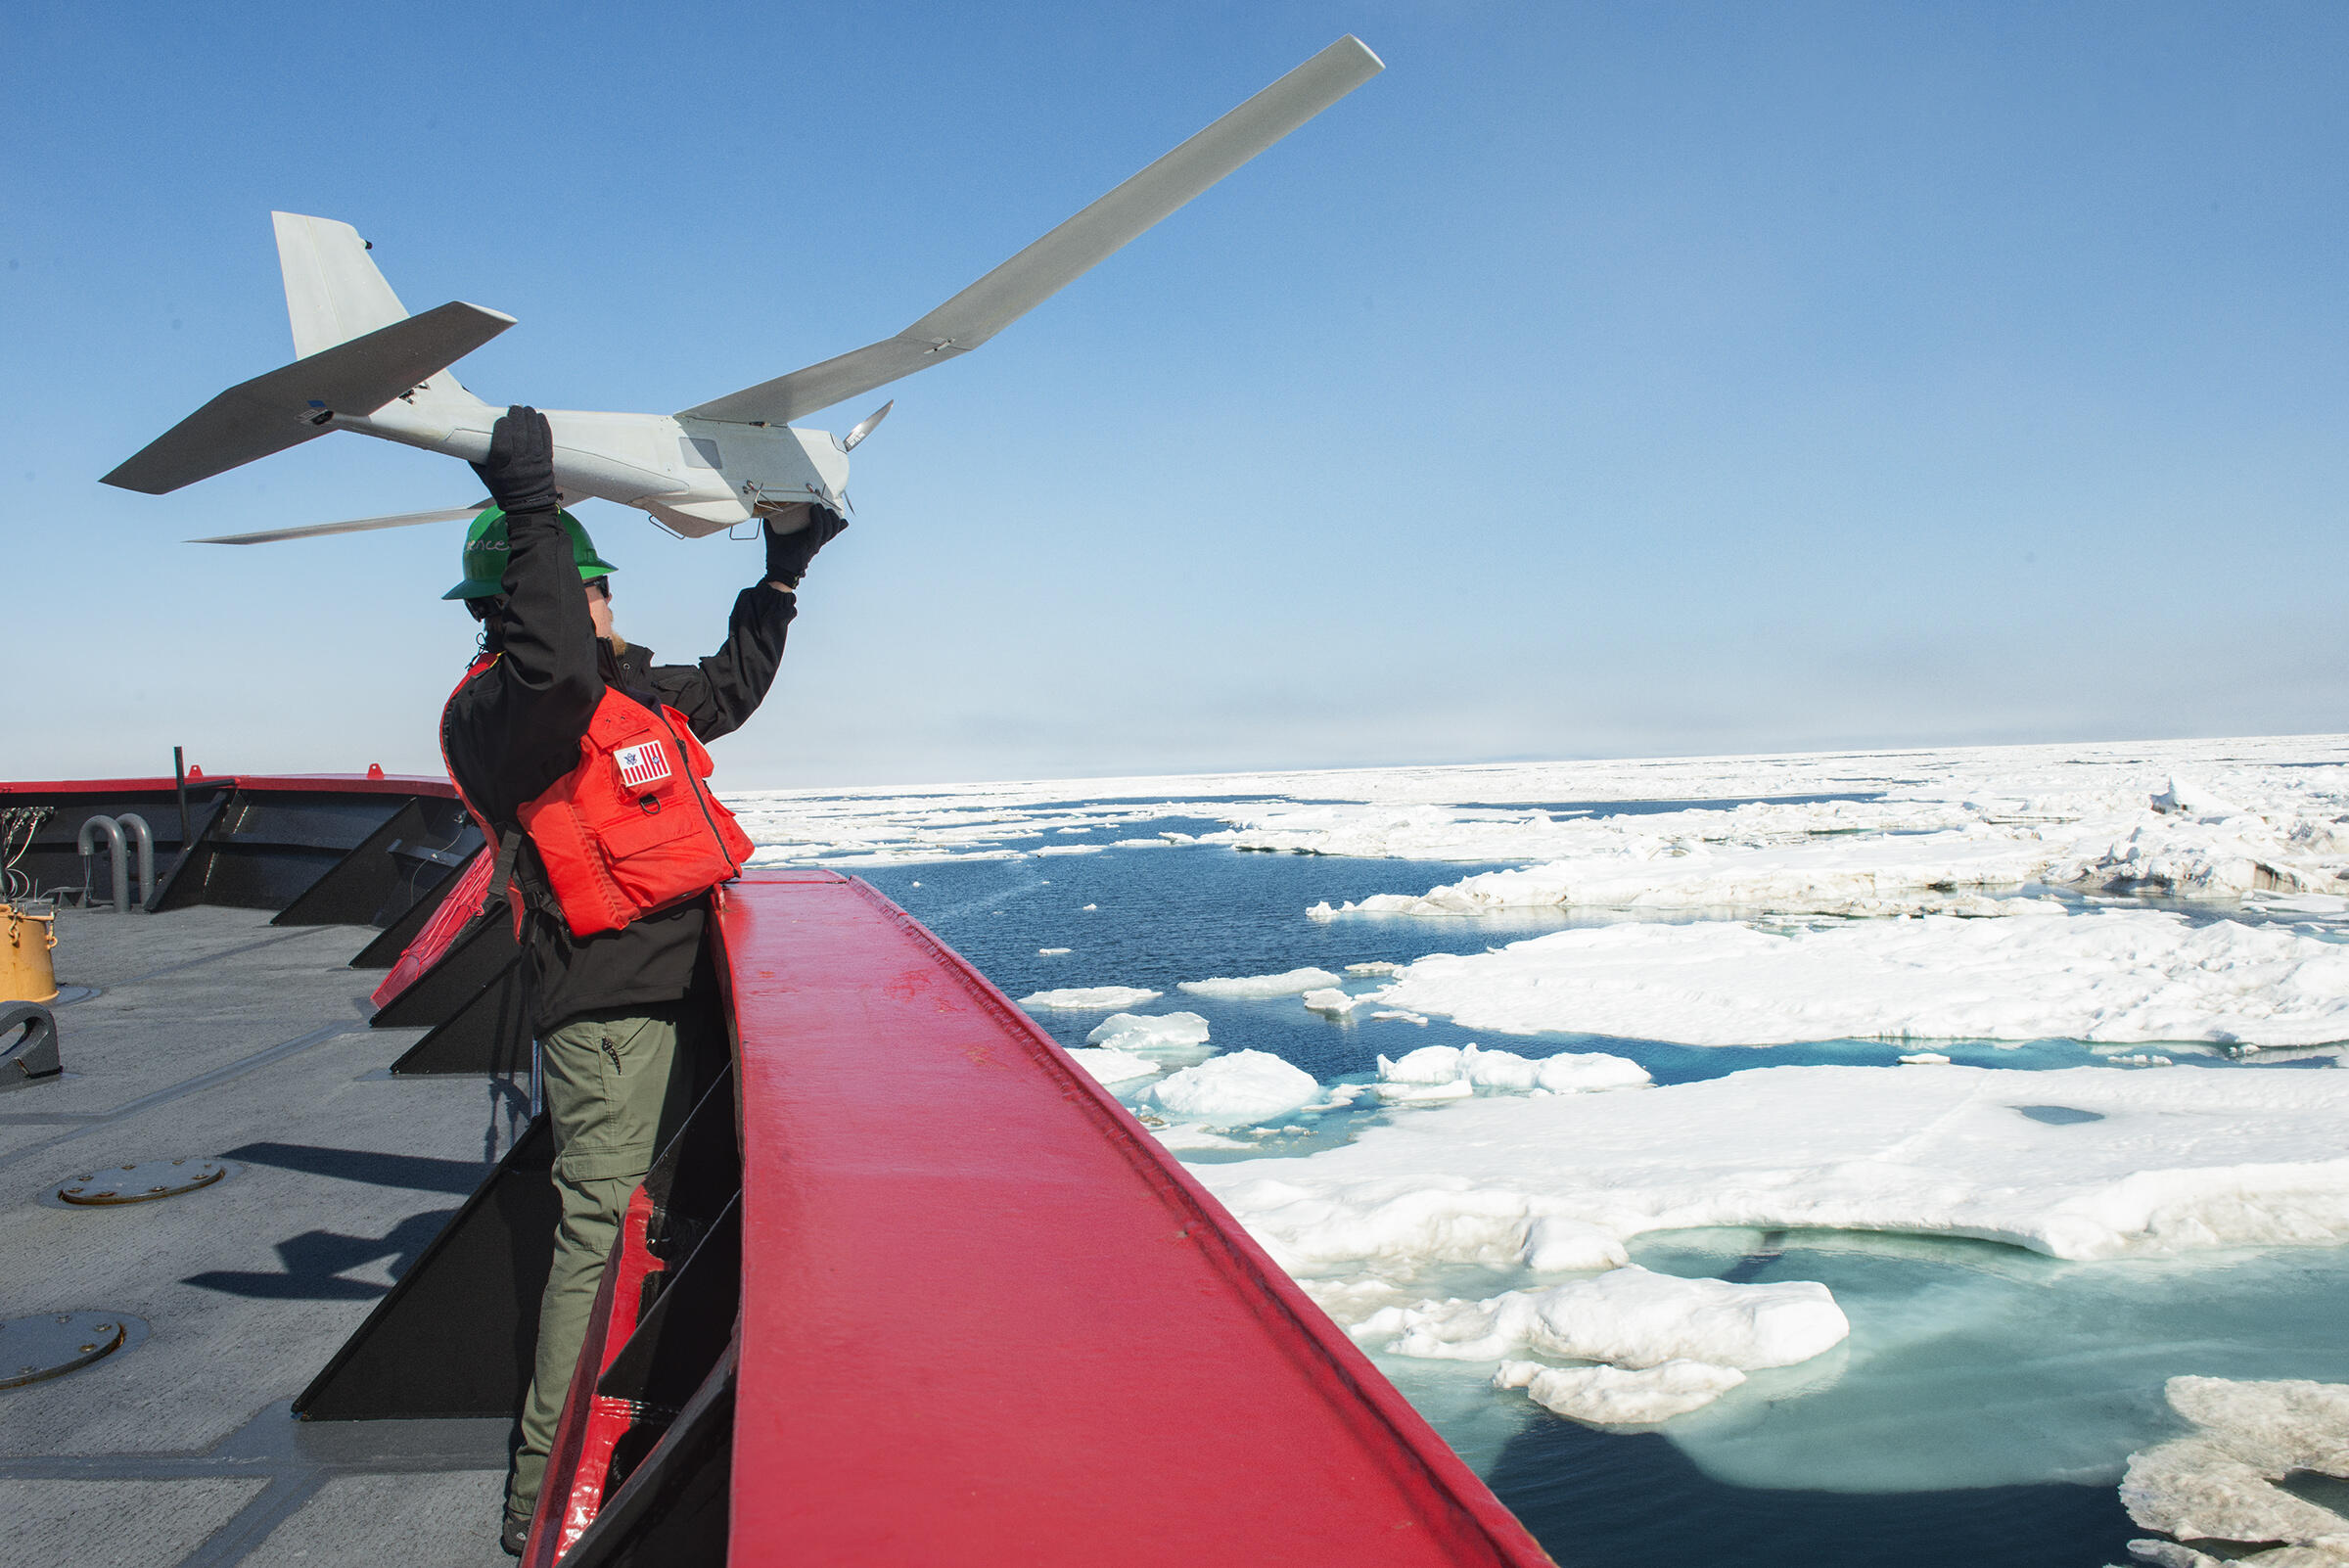 Kevin Vollbrecht lanuches Puma SUAS (small unmanned air system) from US Coast Guard Ship Healy in the Chukchi Sea. Esther Horvath